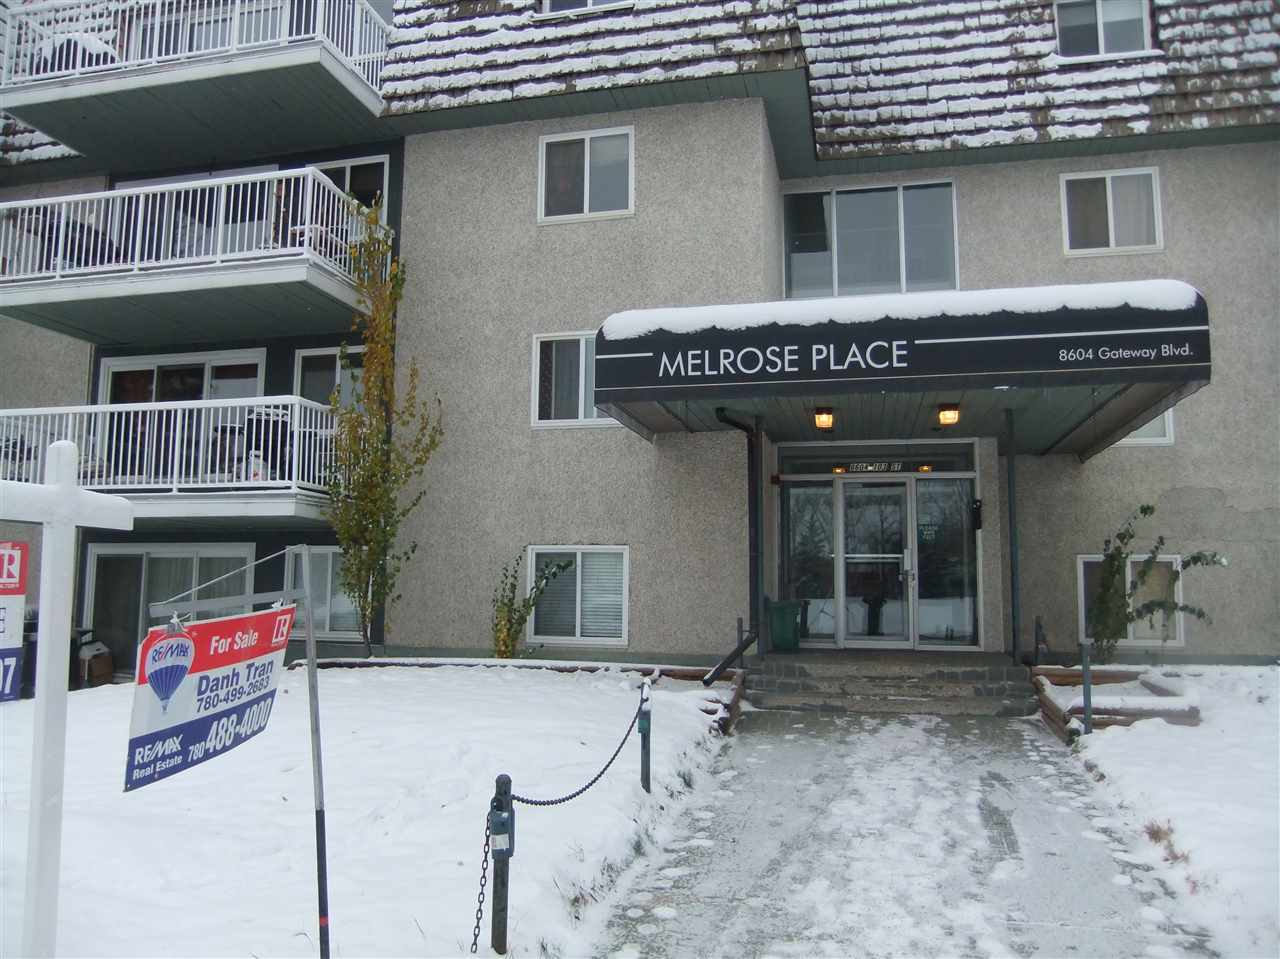 Just over 600 sqft 1 bedroom on 8th floor in the heart of Strathcona, spacious living room with huge balcony and great view, full bath, in-suite storage, few blocks from whyte ave and river valley, close to U of A, hardwood floor in LR and bedroom/ Available to move-in right away. Asking only $156,900. Price reduced for quick sale.